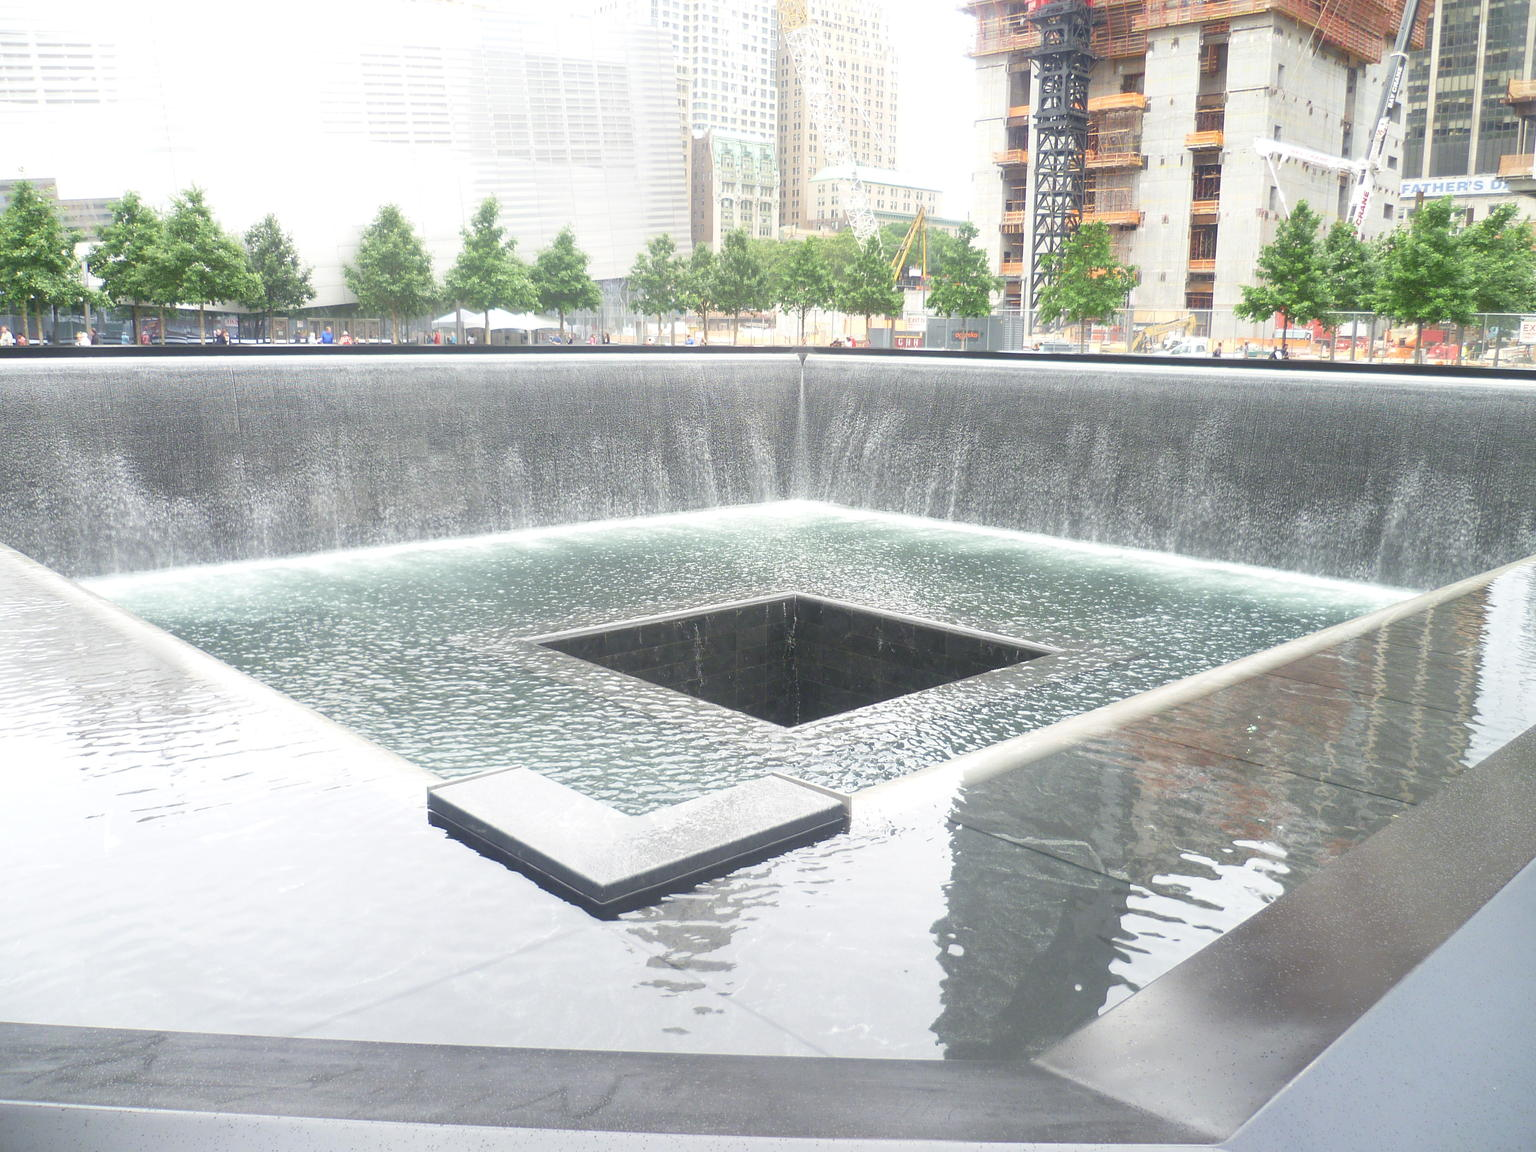 9/11 water feature